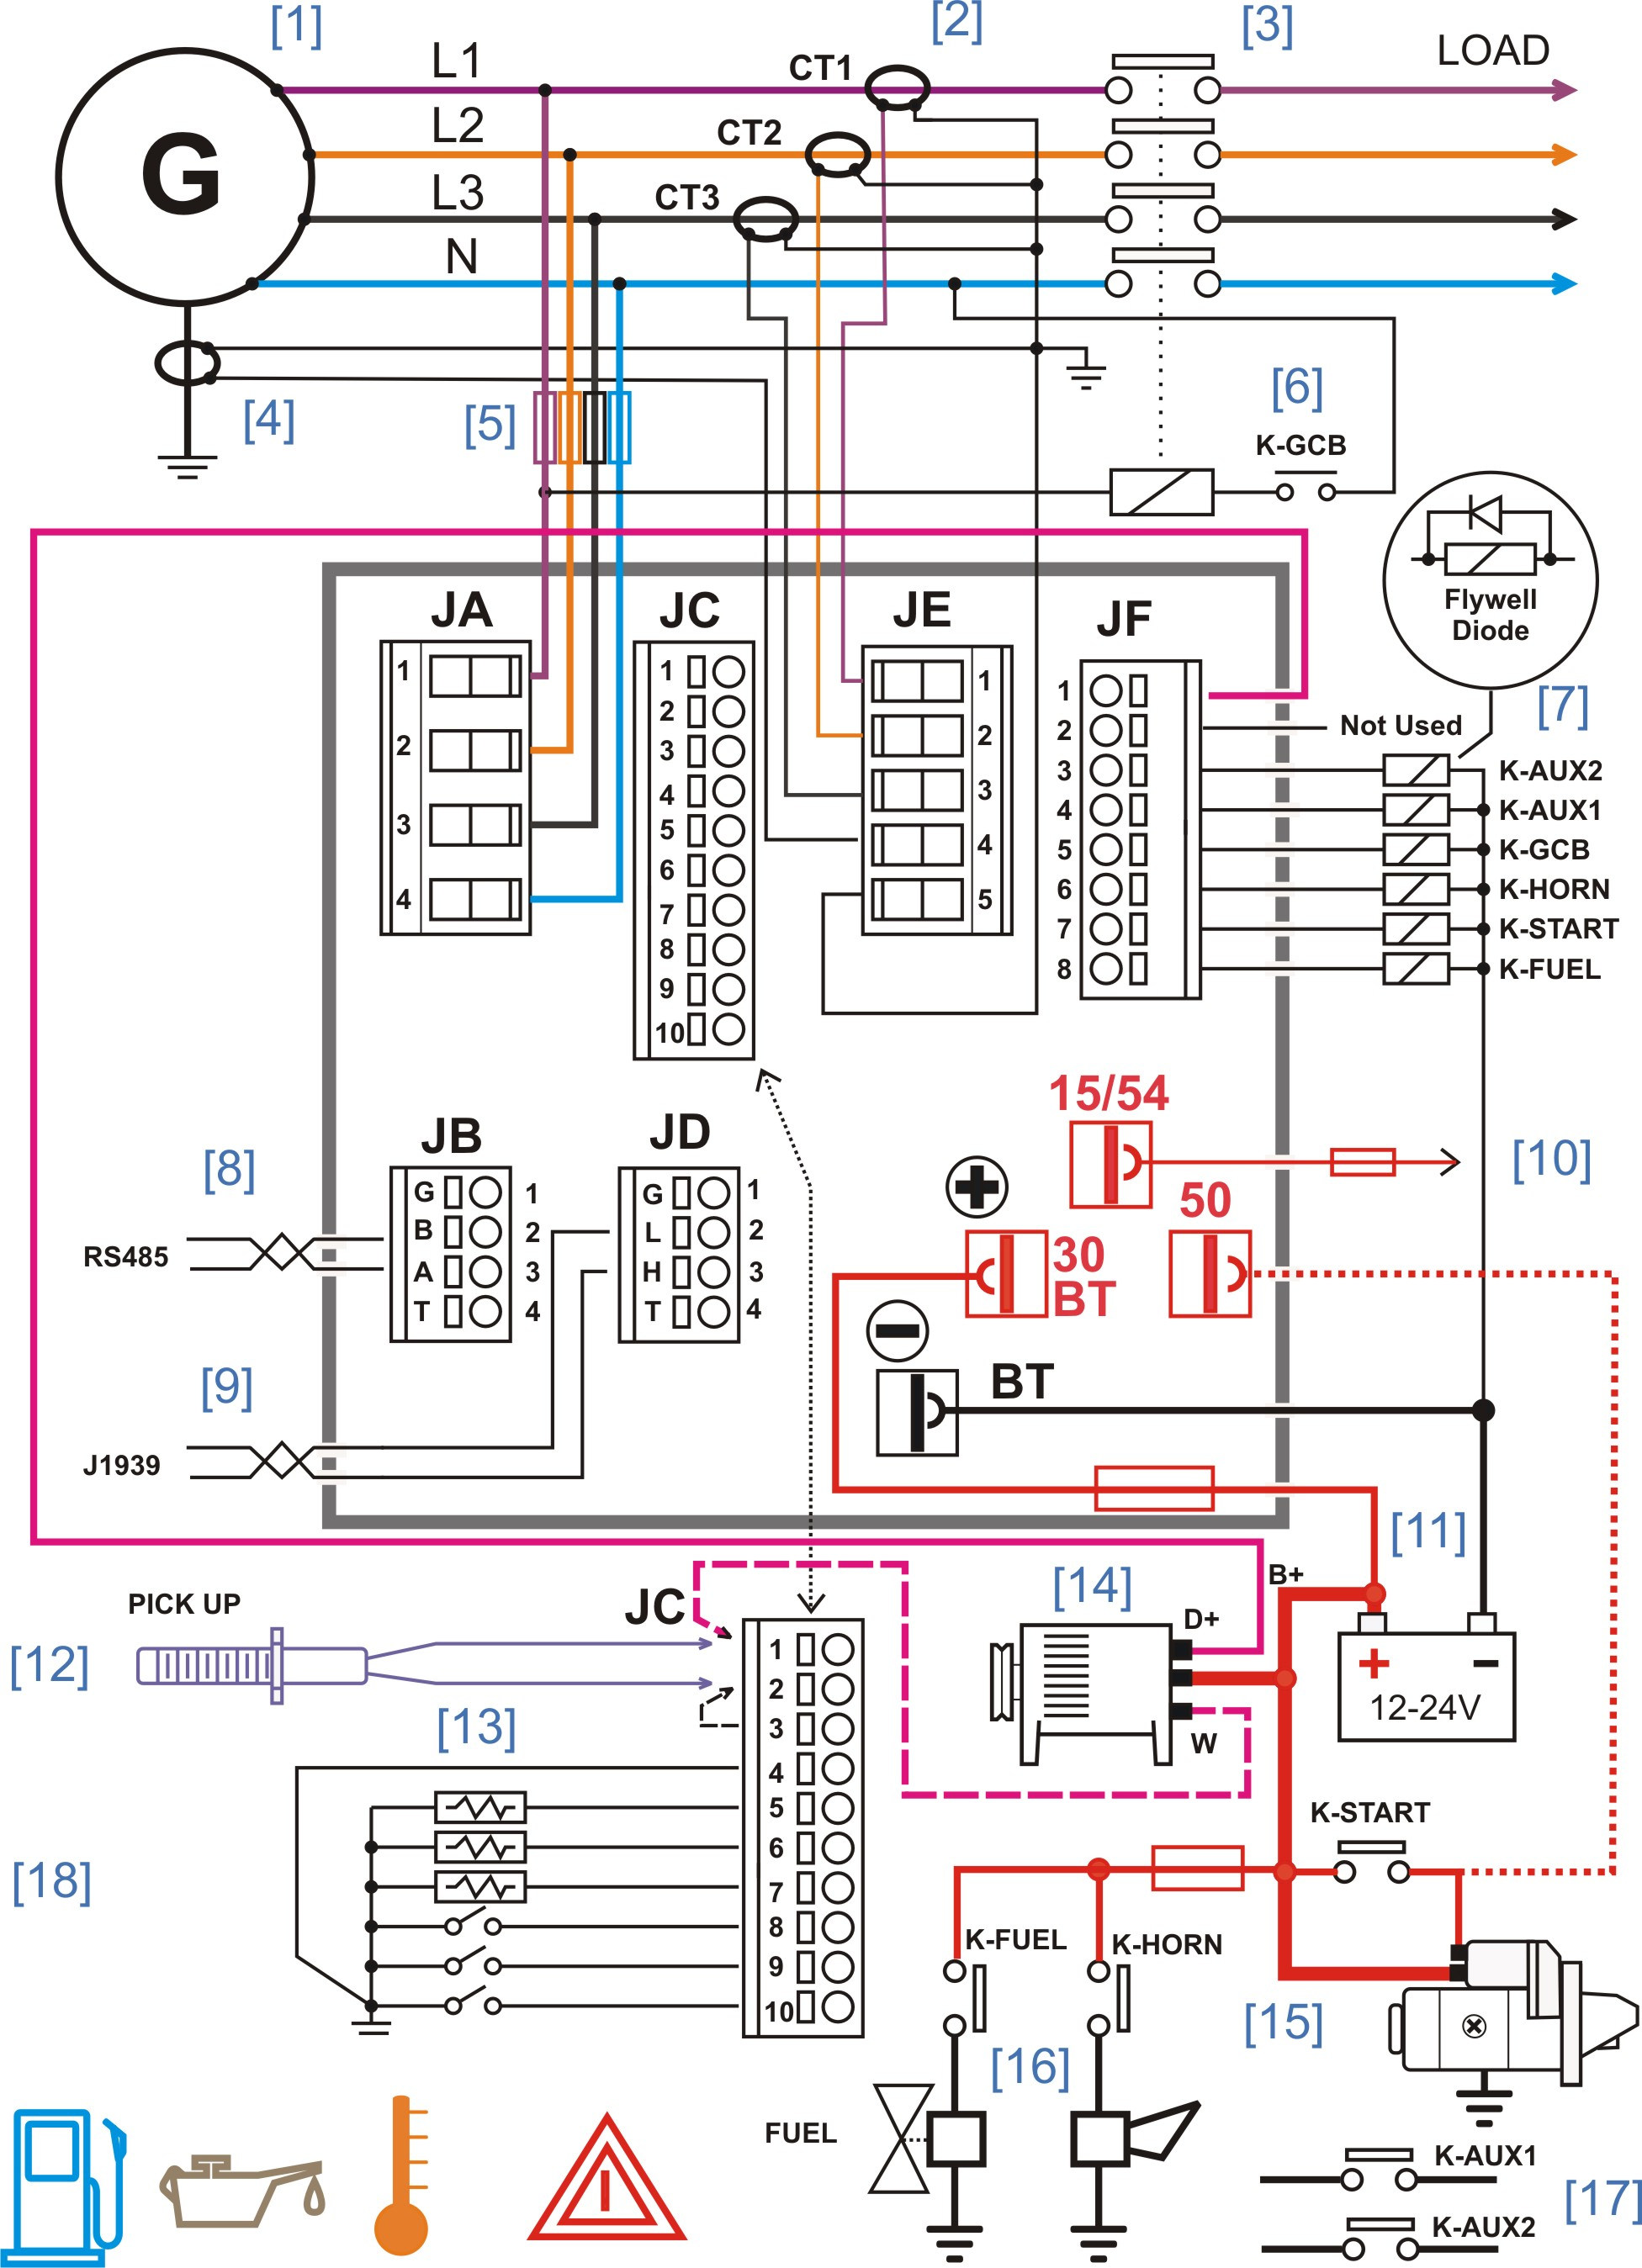 eaton drive wiring diagrams nissan rb26dett engine diagram wiring diagram for 359 peterbilt the wiring diagram diesel generator control panel wiring diagram wiring diagram